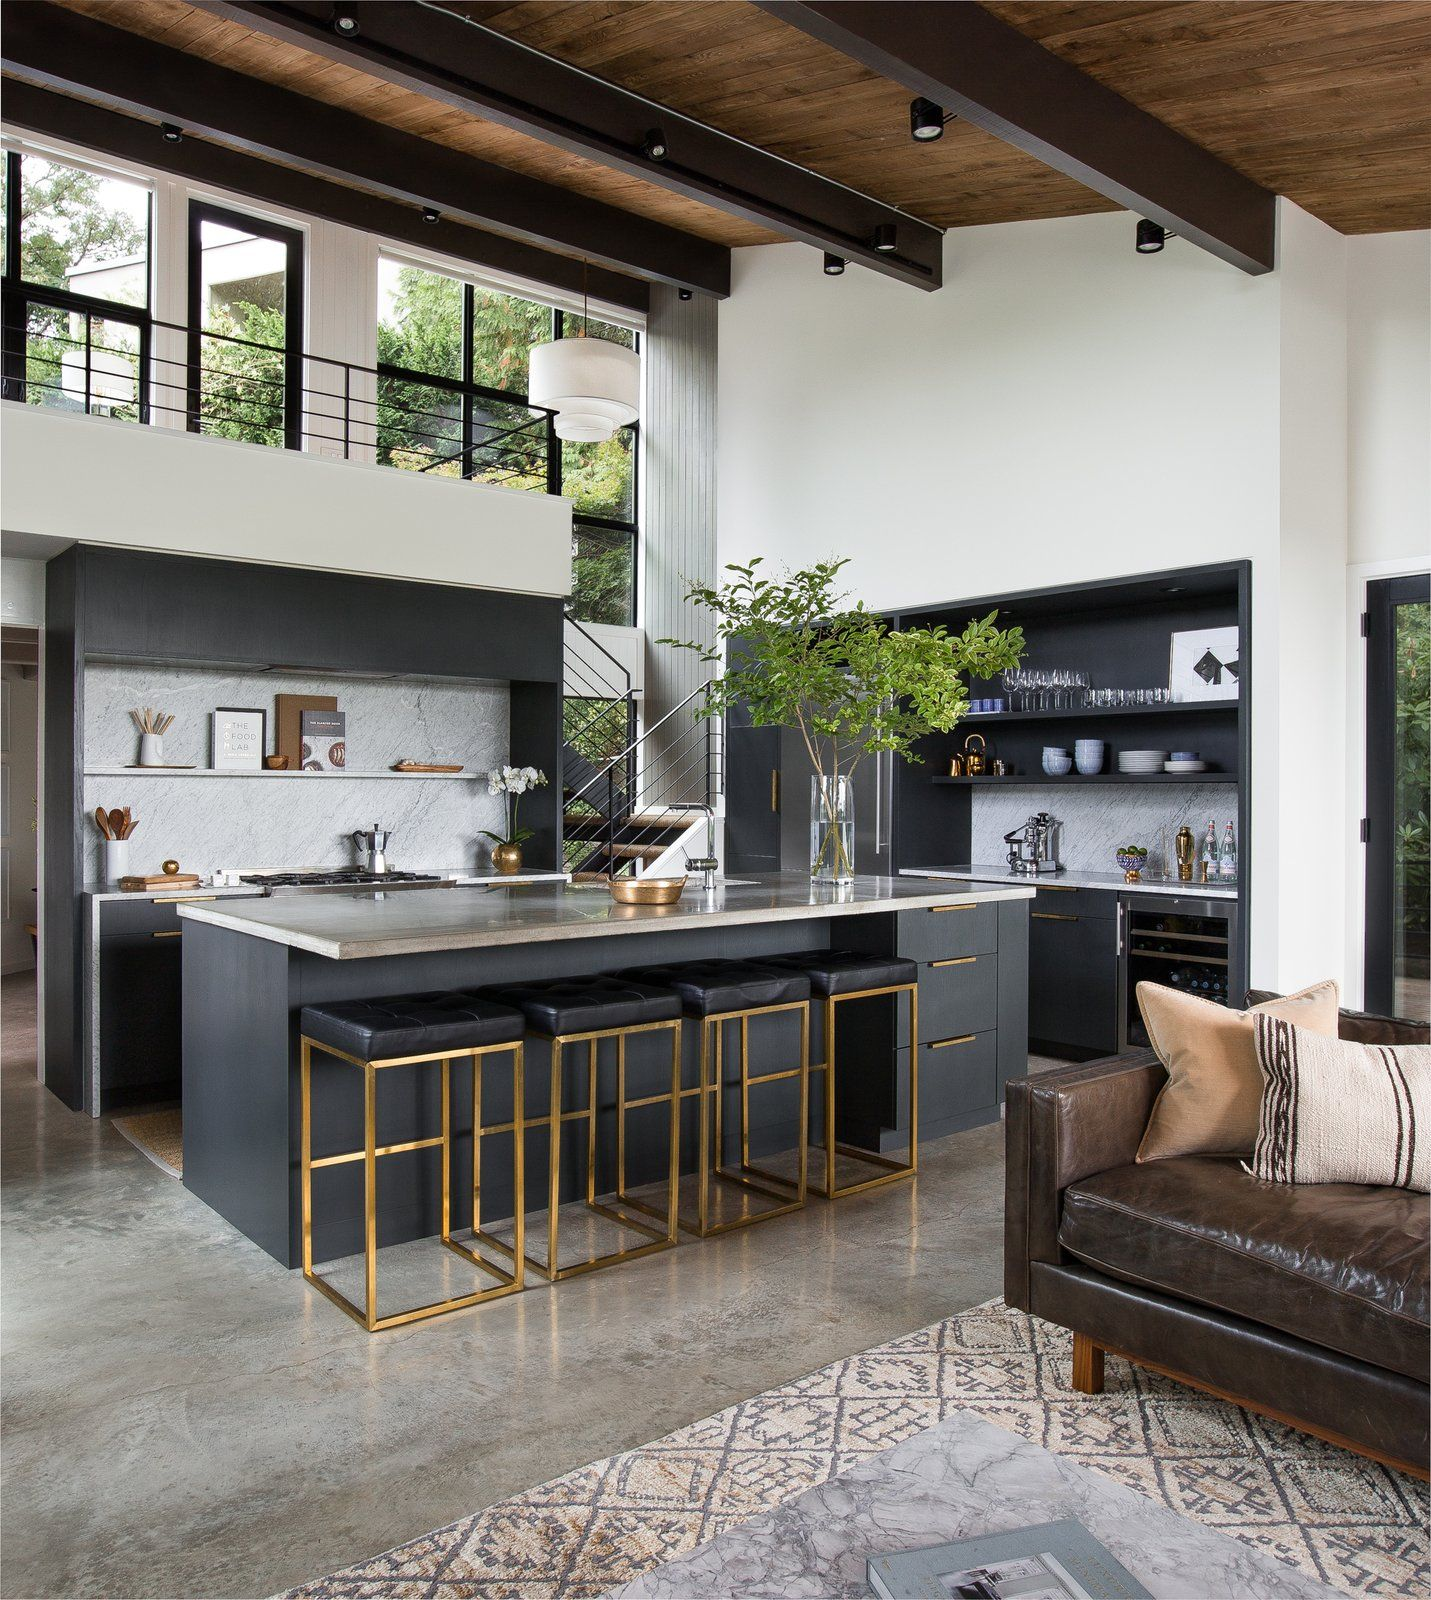 Photo 4 Of 17 In A 1957 Midcentury In Seattle Receives A Striking Interior Design Kitchen Modern Kitchen Design Home Decor Kitchen